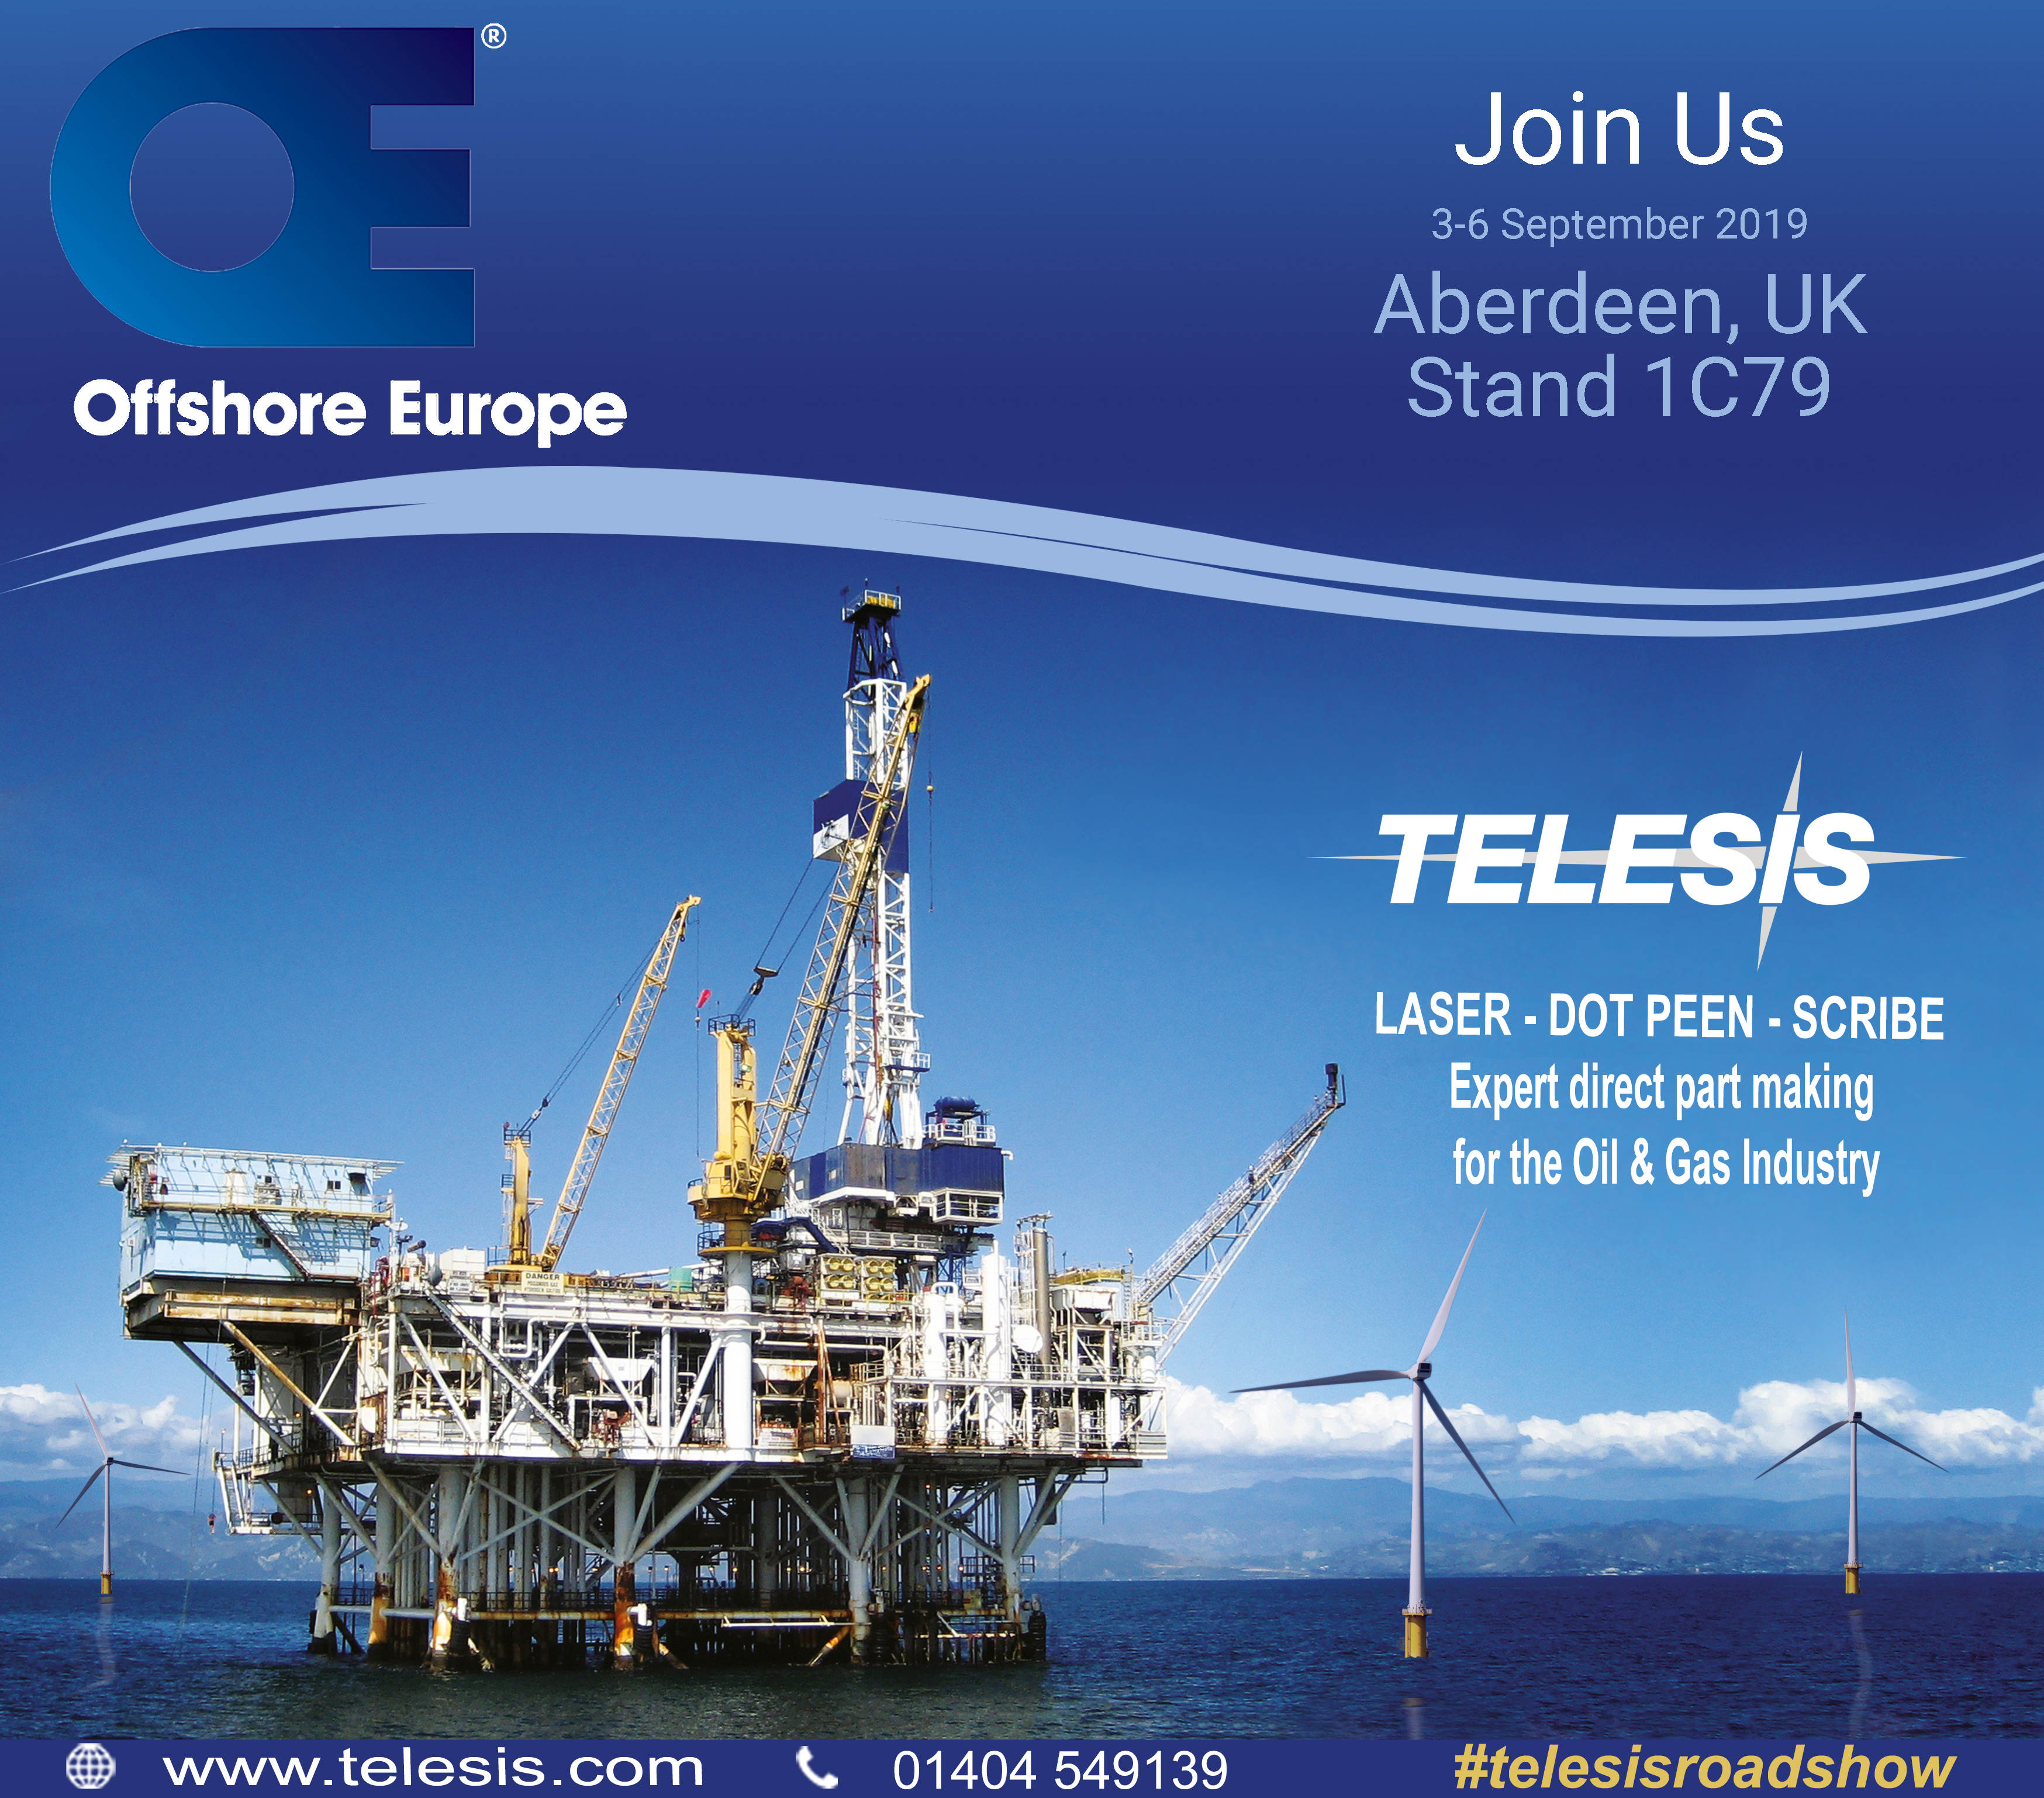 Offshore Europe | 03/09/2019 - 06/09/2019 | Stand 1C79 | Aberdeen, United Kingdom